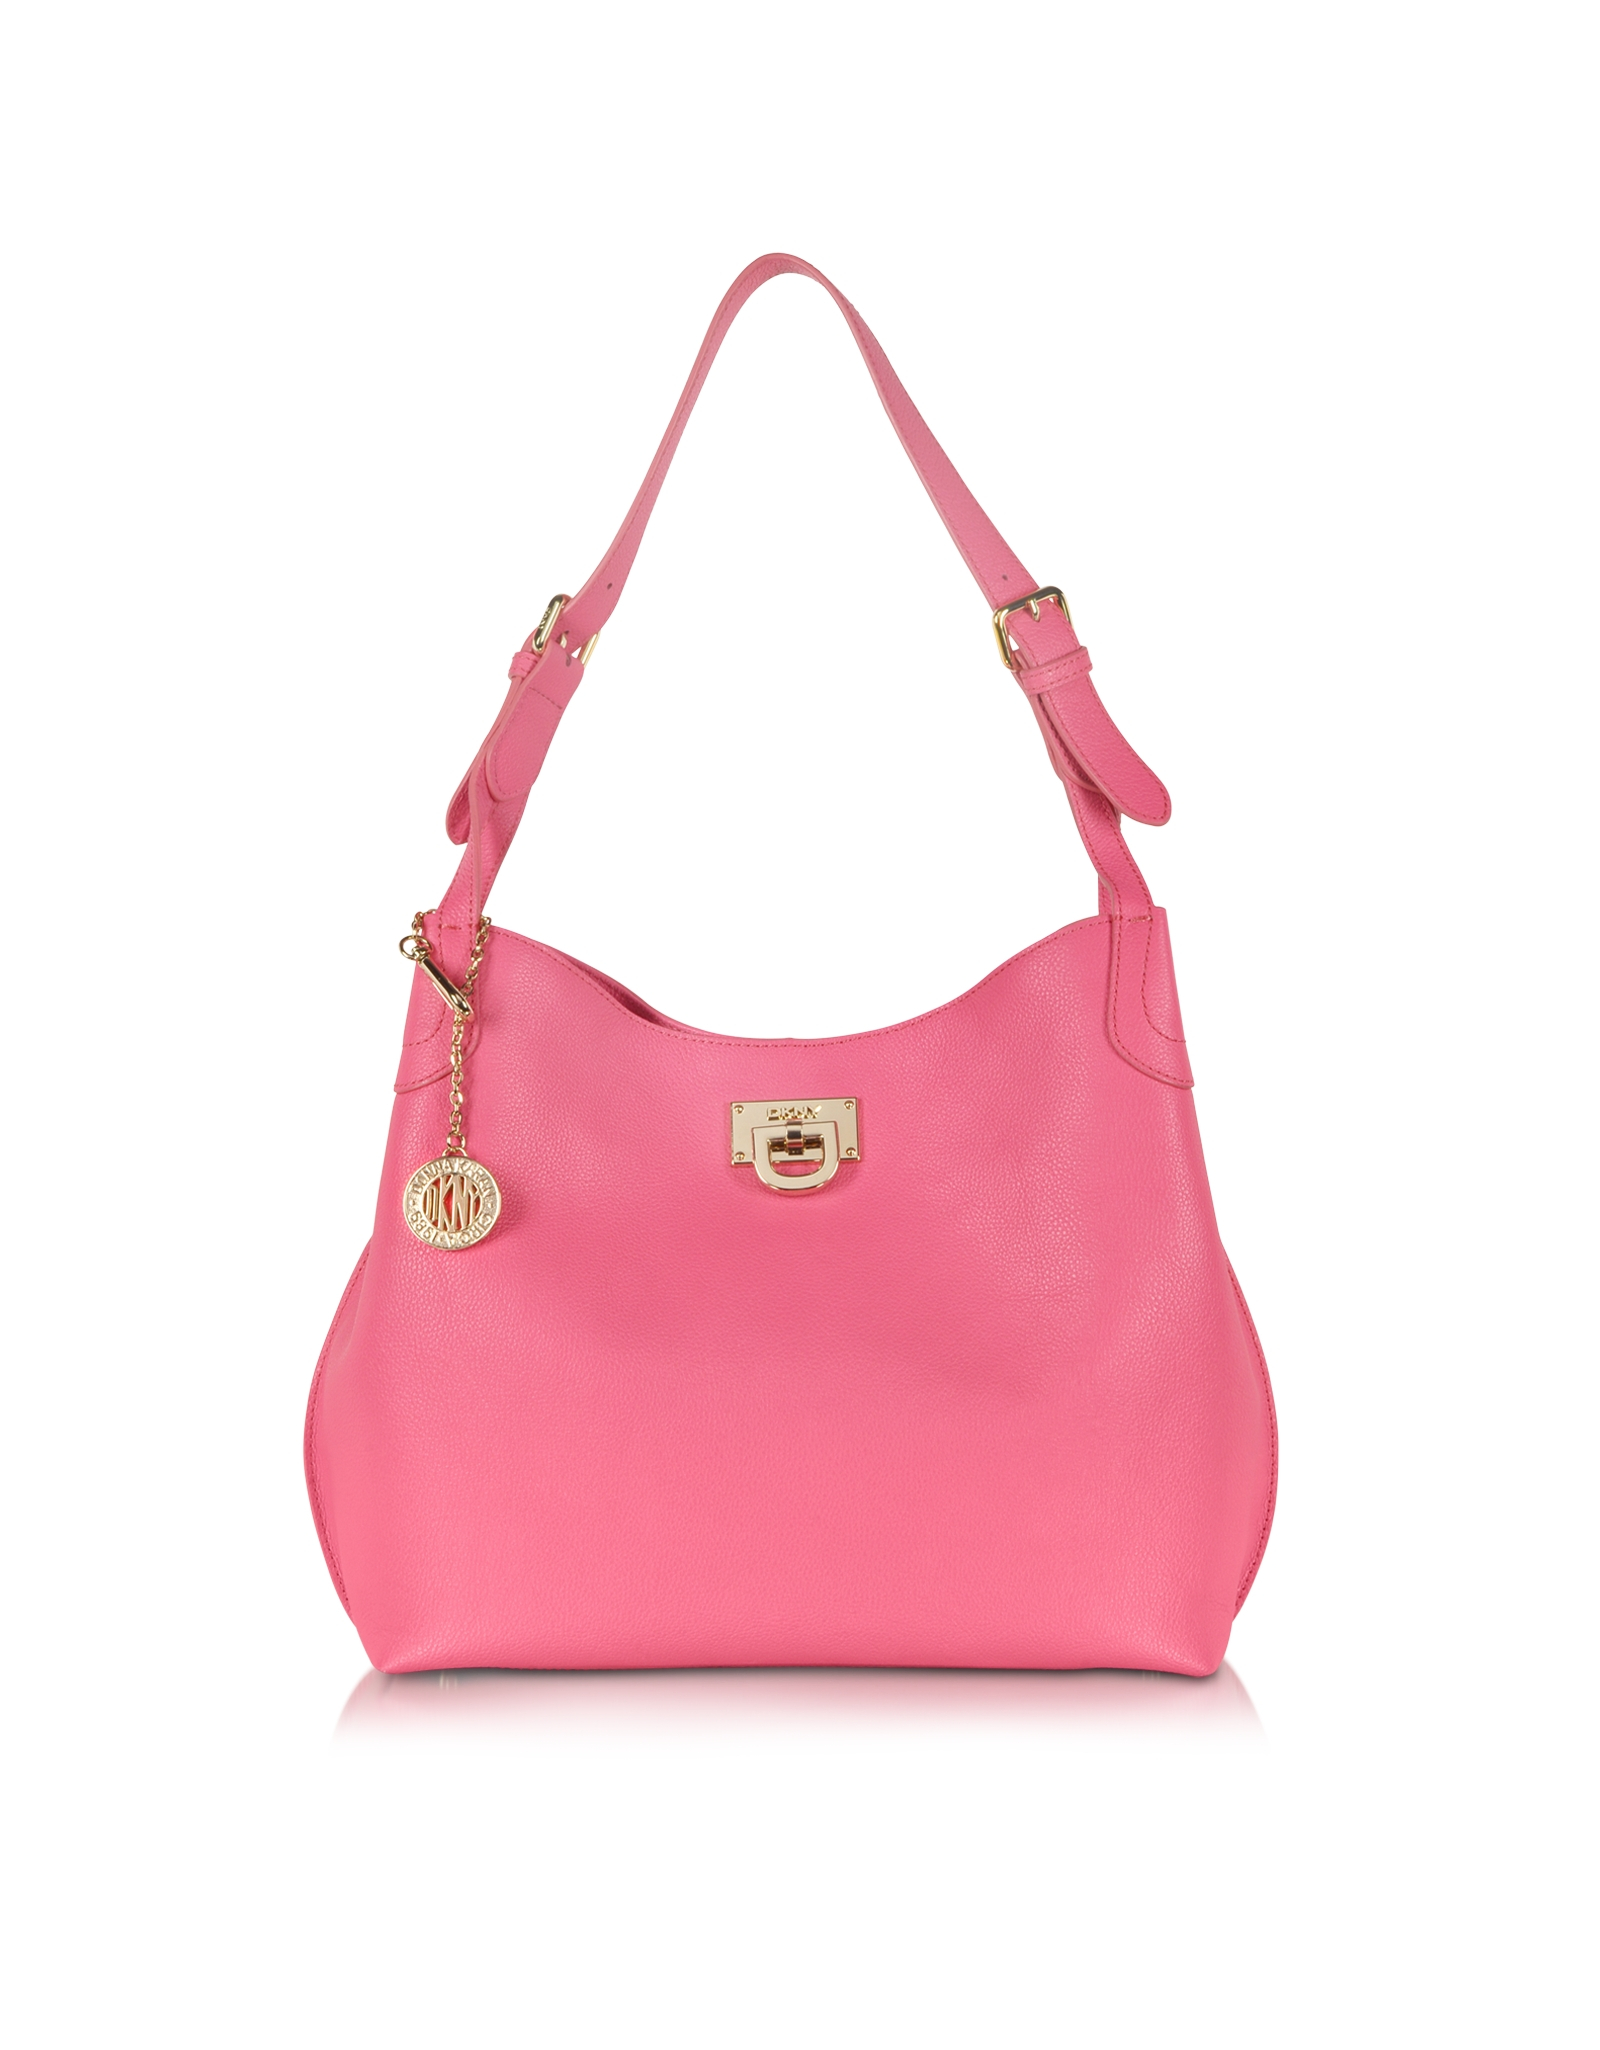 Dkny Chelsea Leather Hobo Bag in Pink | Lyst